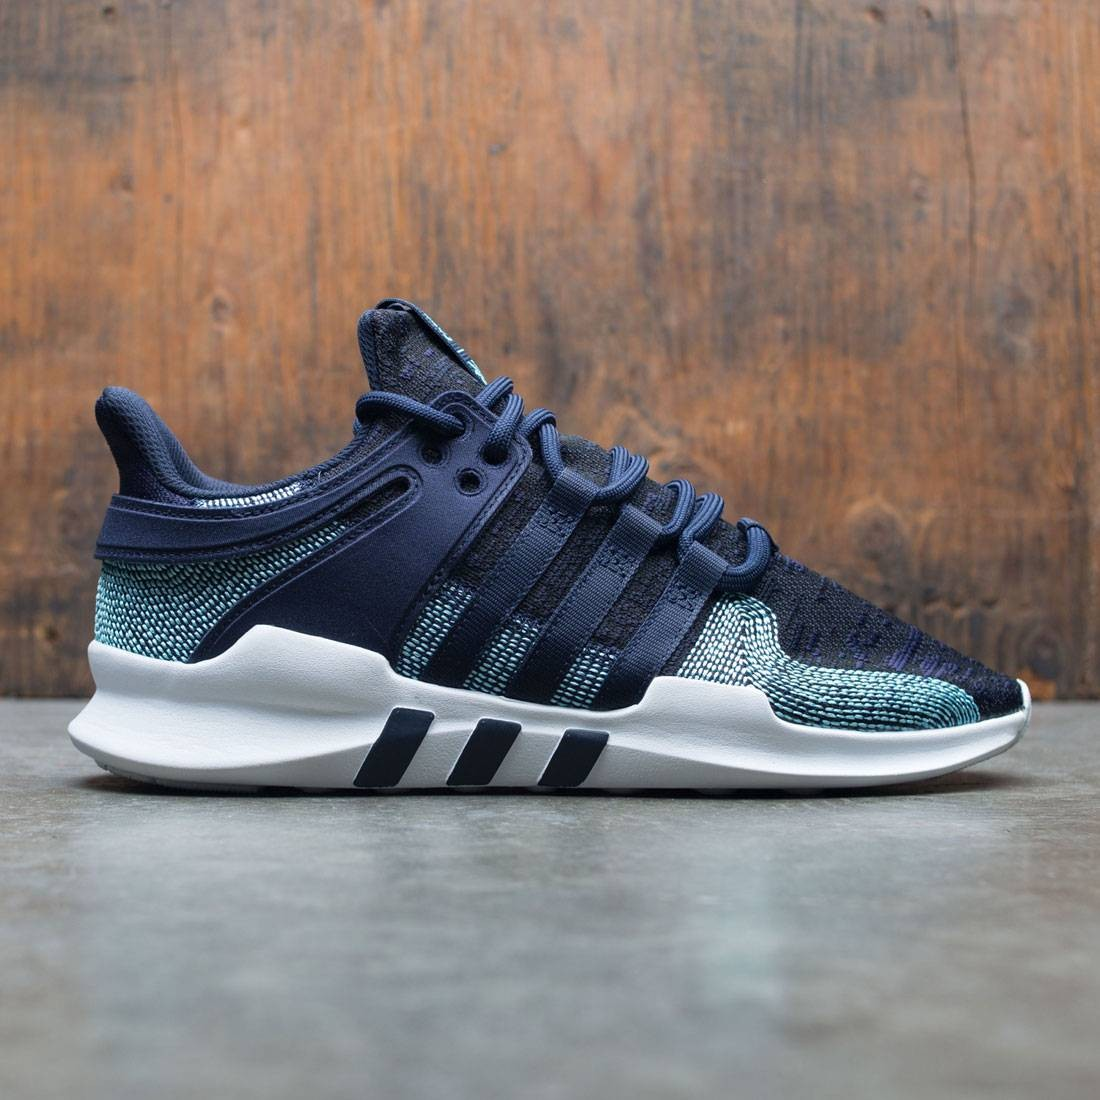 Adidas Men EQT Support ADV CK Parley (blue / legend ink / blue spirit / footwear white)